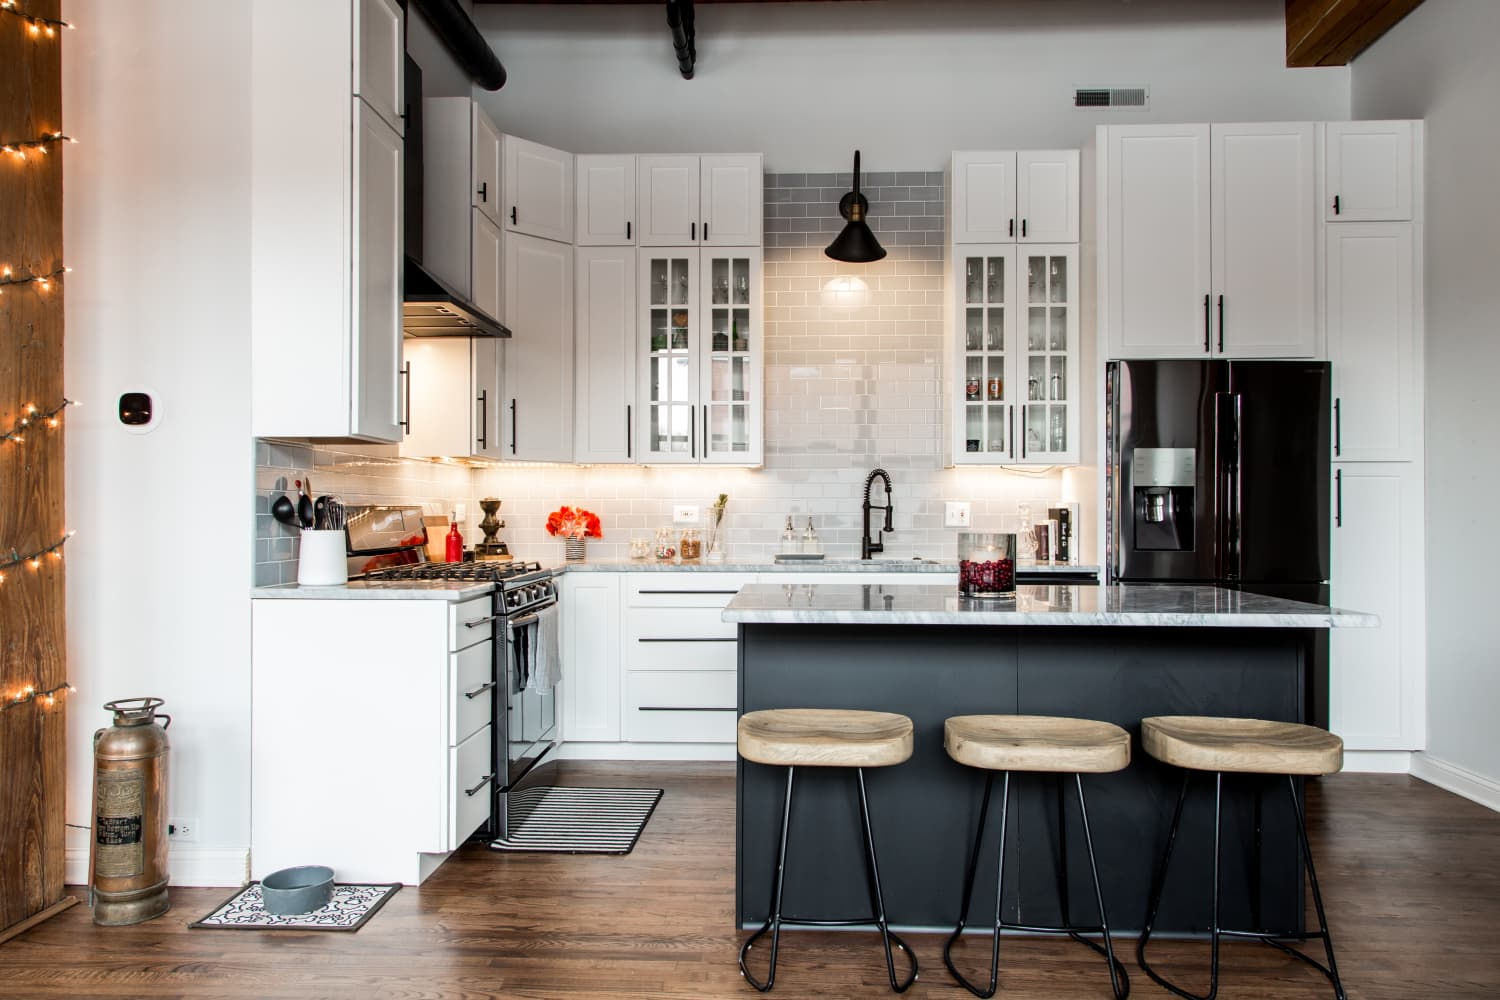 8 Brilliant, Inexpensive Ways to Improve the Light in Your Kitchen